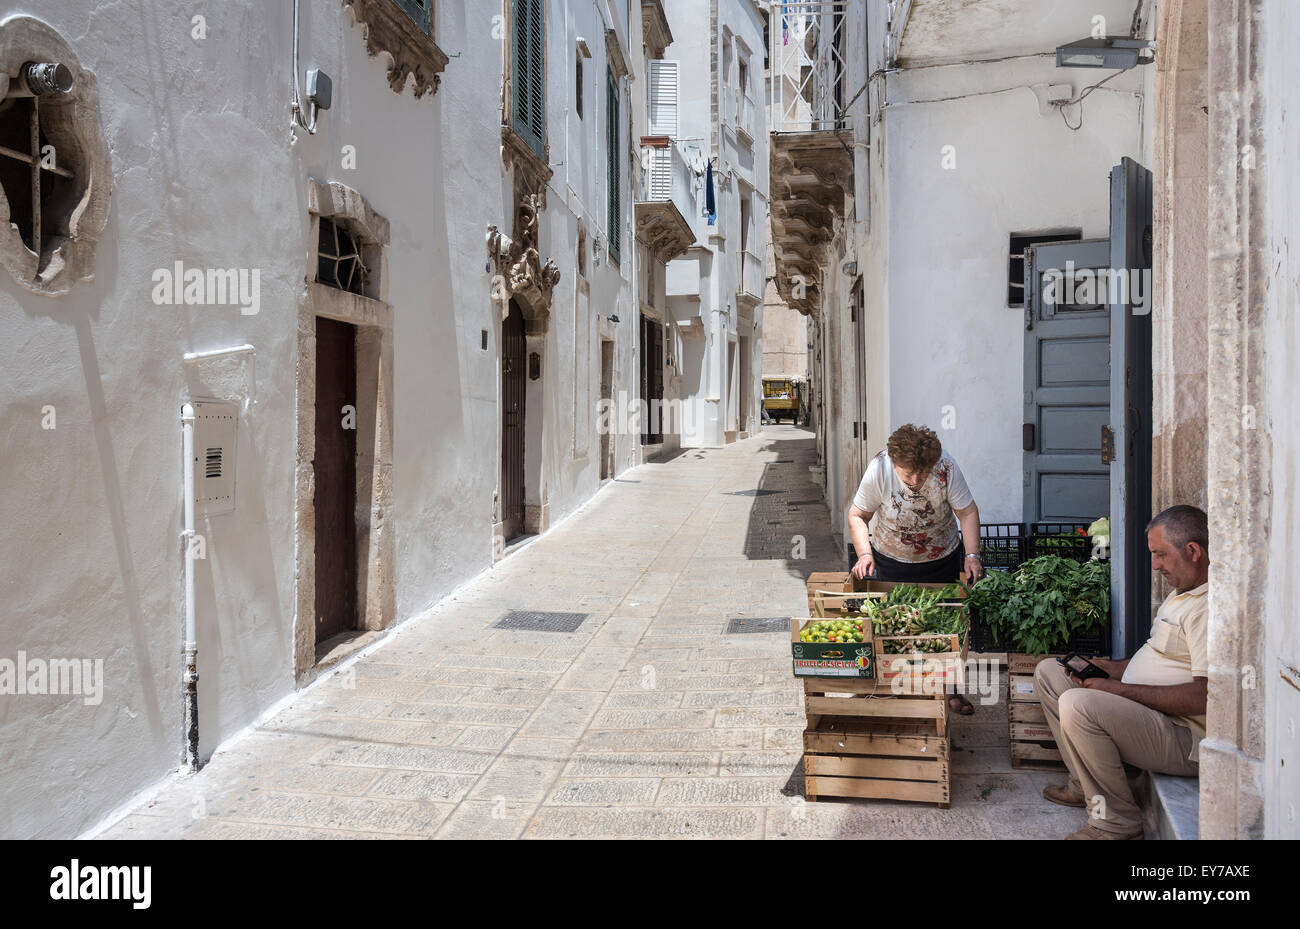 Vegetable stall in the Baroque side streets of  Martina Franca, in the Itria Valley,  Puglia, Italy. - Stock Image